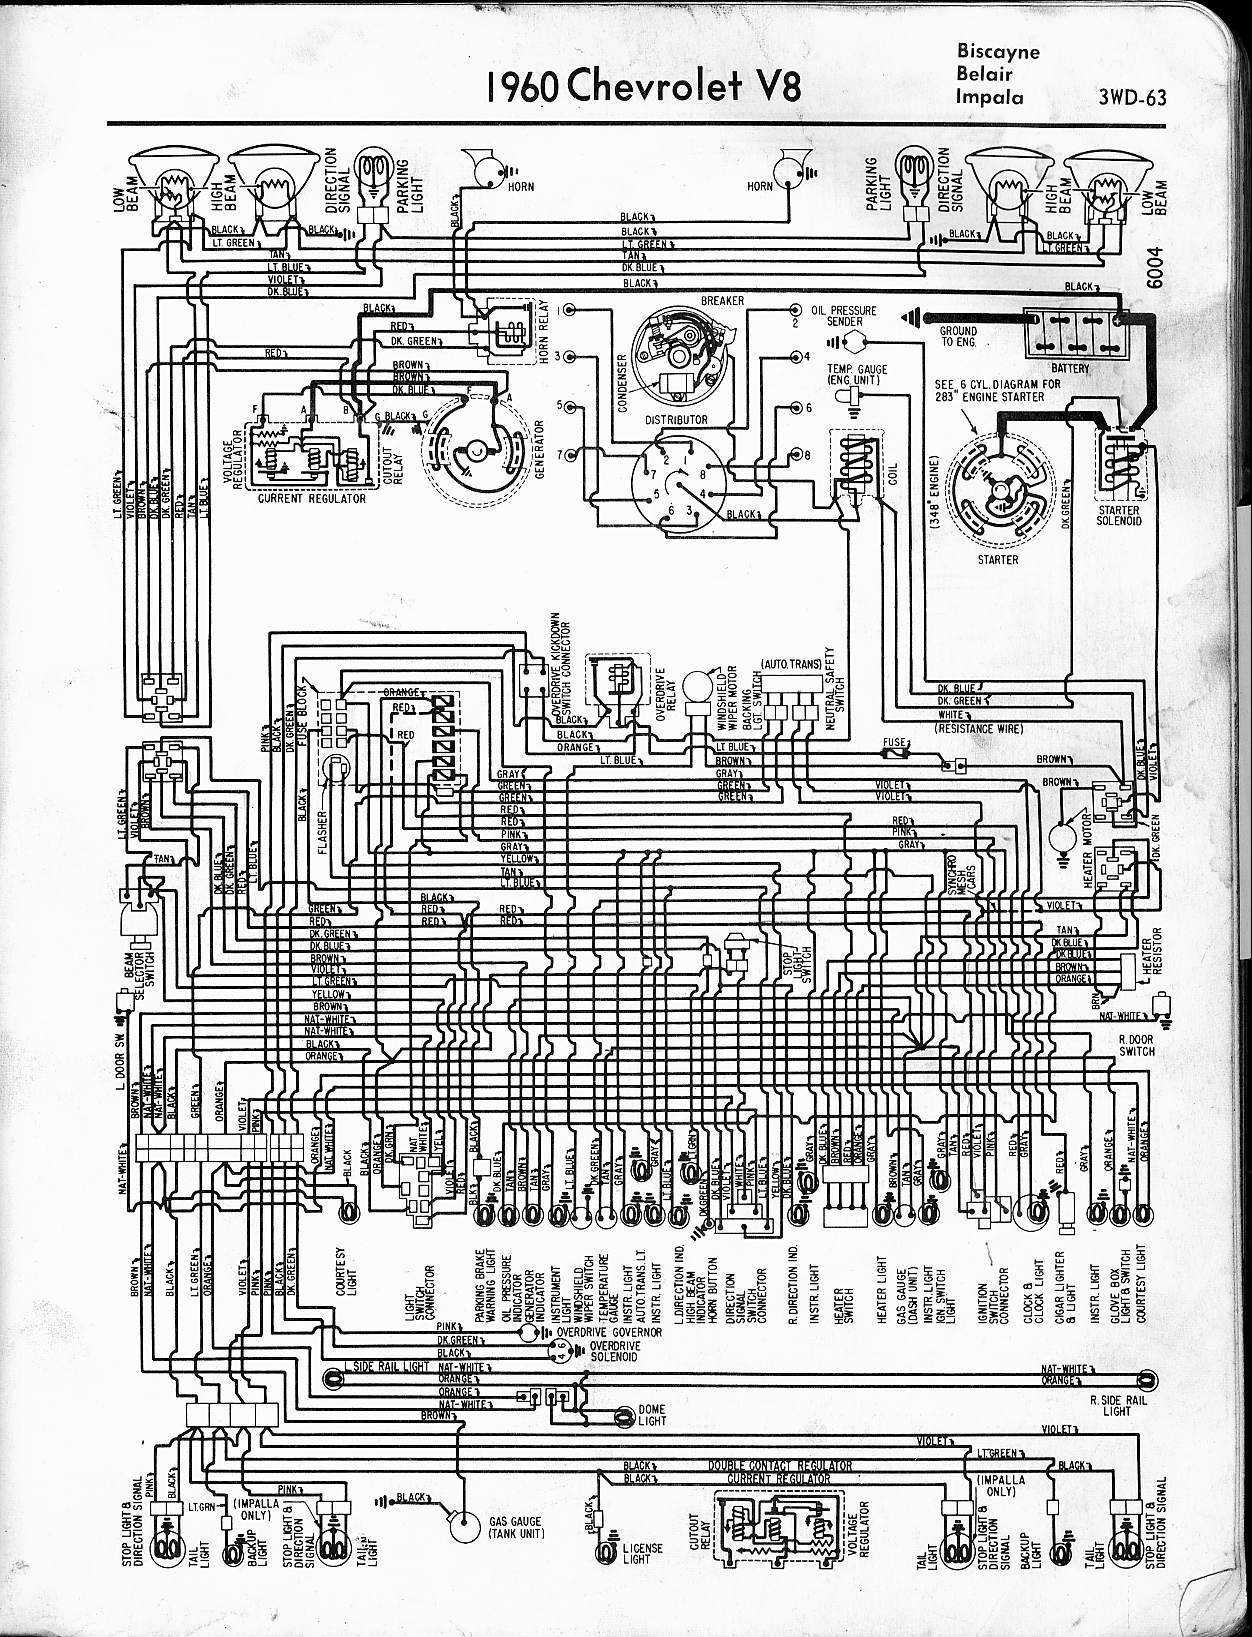 2004 Chevy Impala Engine Diagram 57 65 Chevy Wiring Diagrams Of 2004 Chevy Impala Engine Diagram